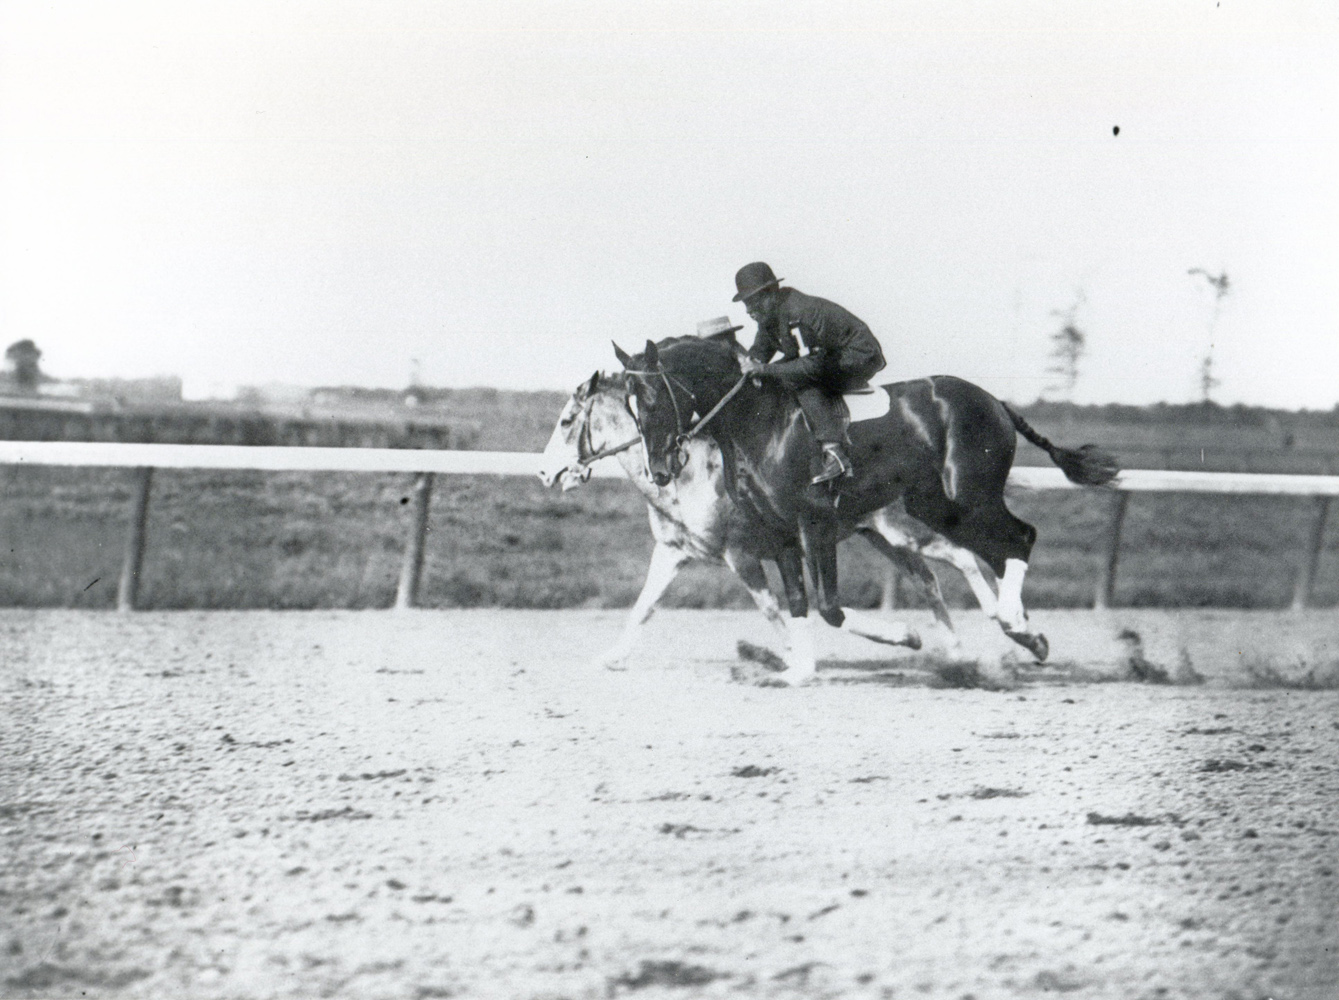 Colin warming up on the track with Marshall Lilly up (Keeneland Library Cook Collection/Museum Collection)